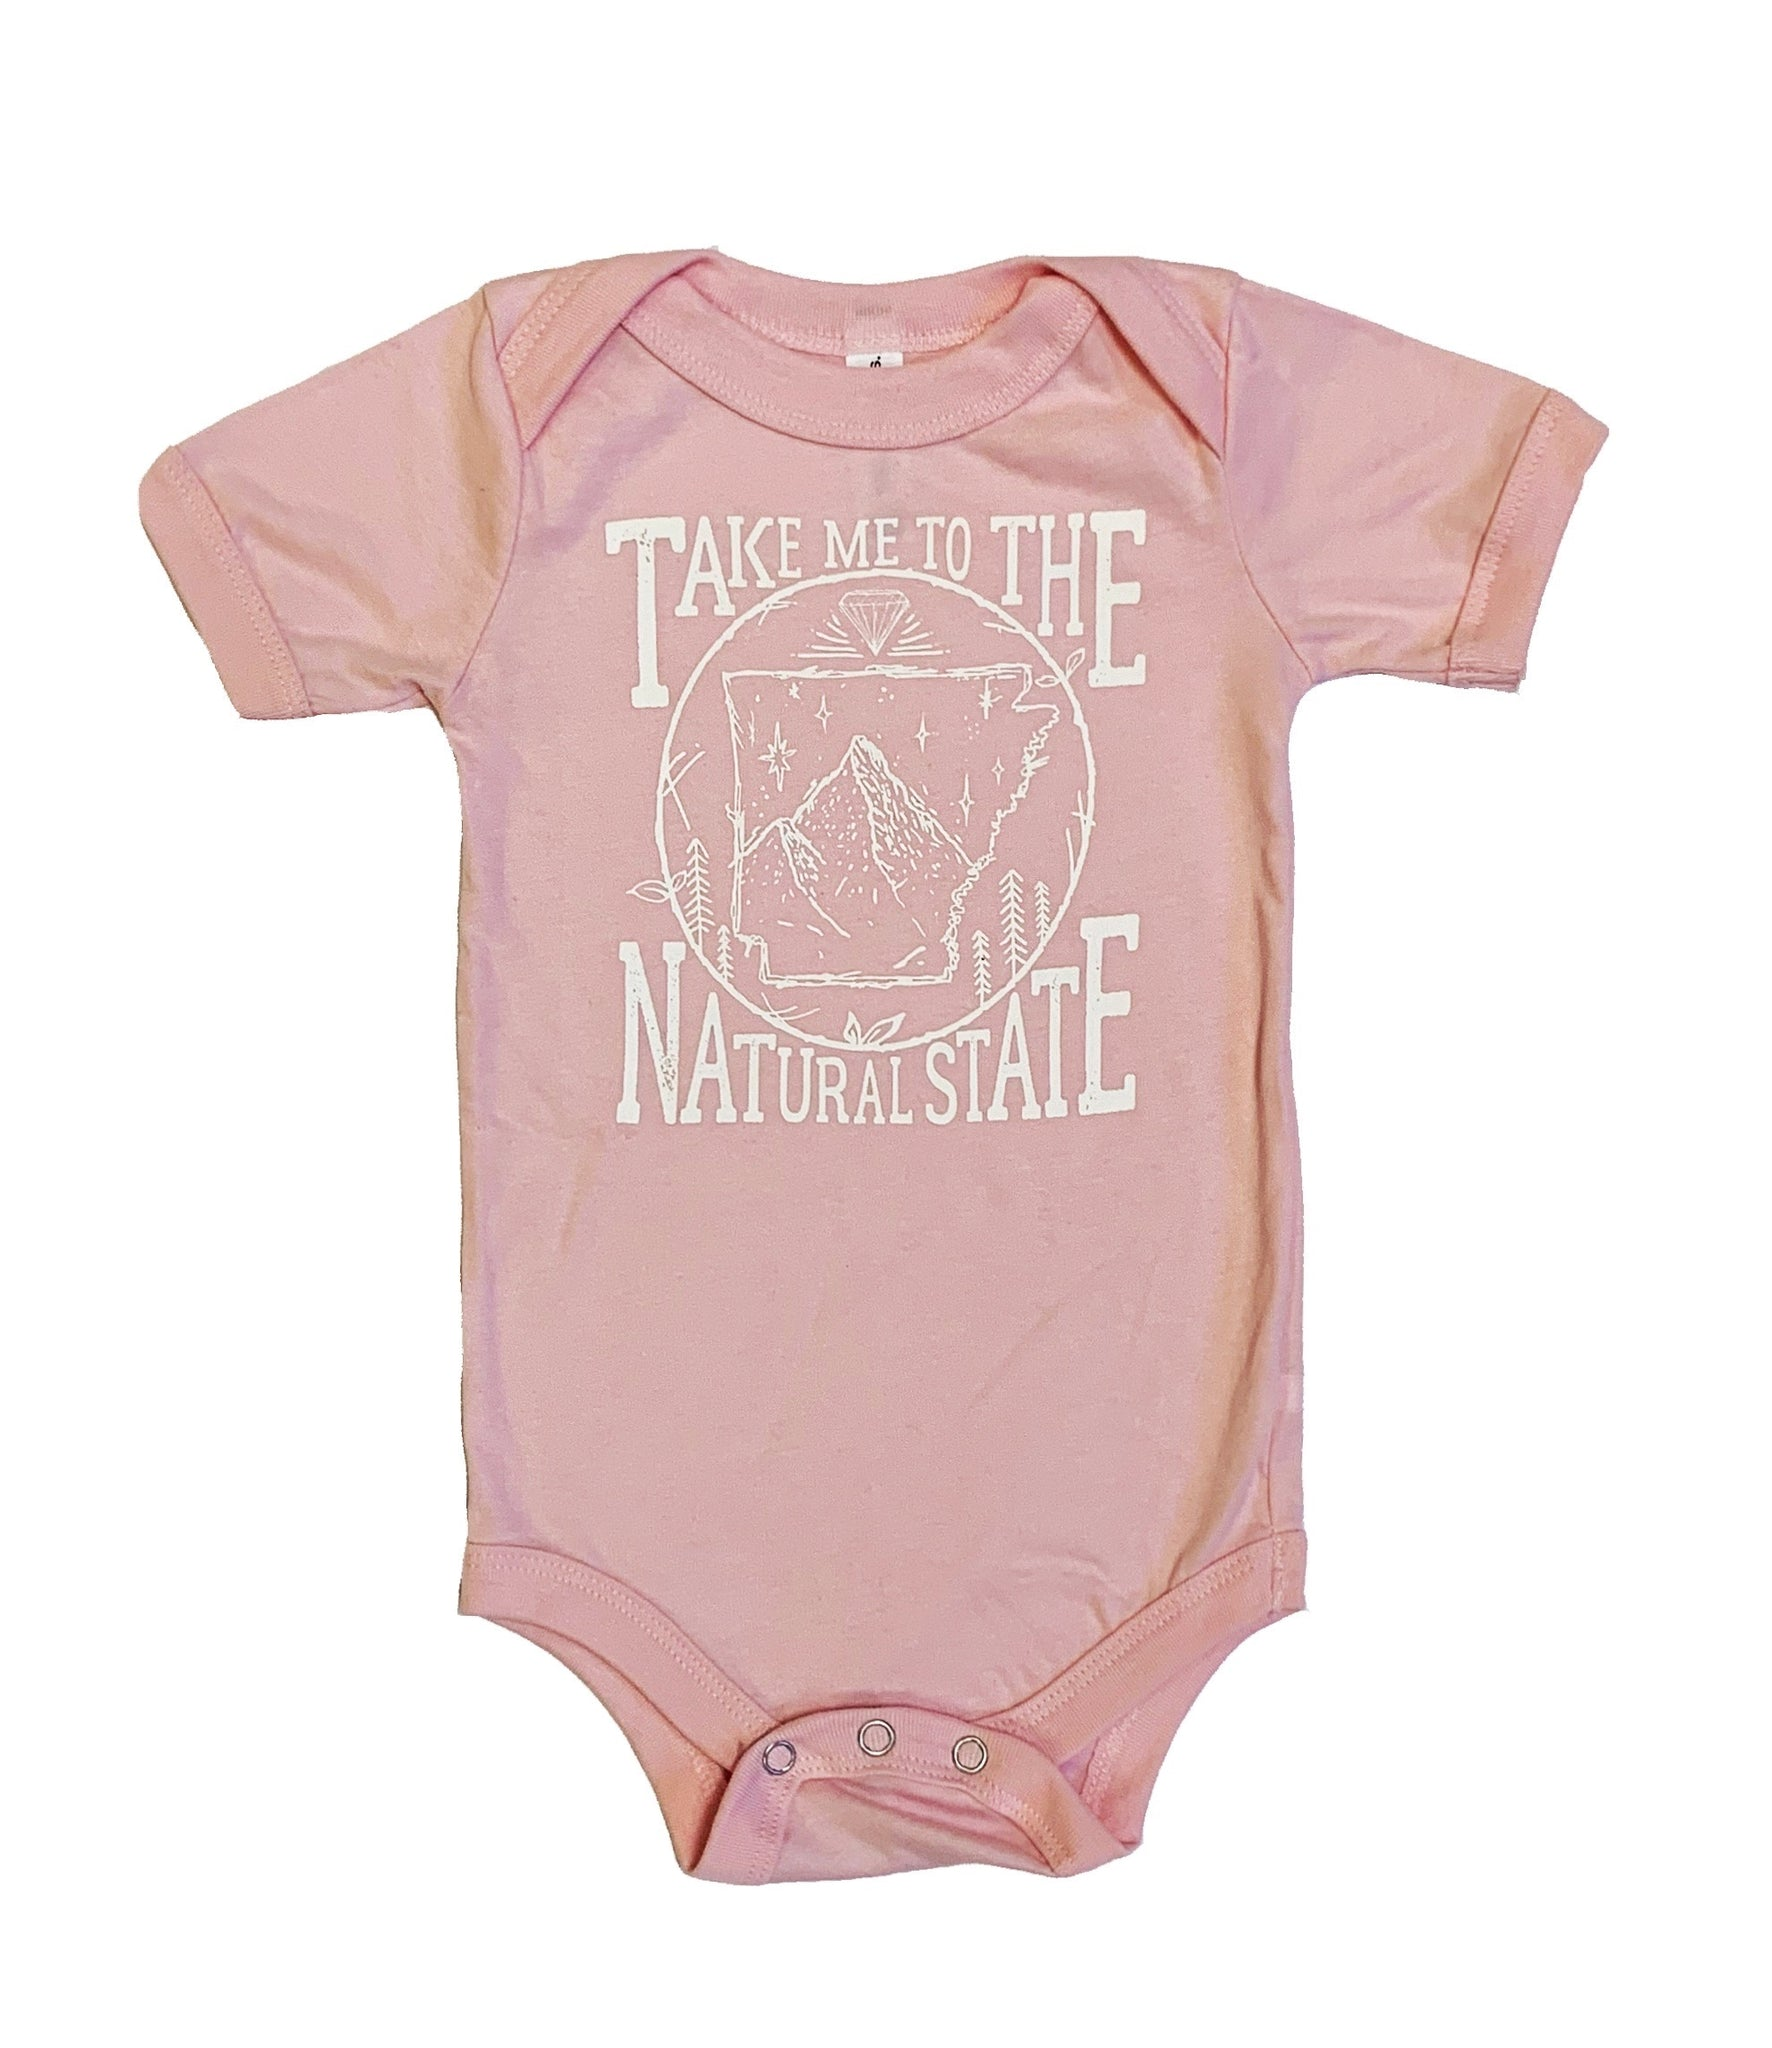 Take Me To The Natural State Pink Onesie